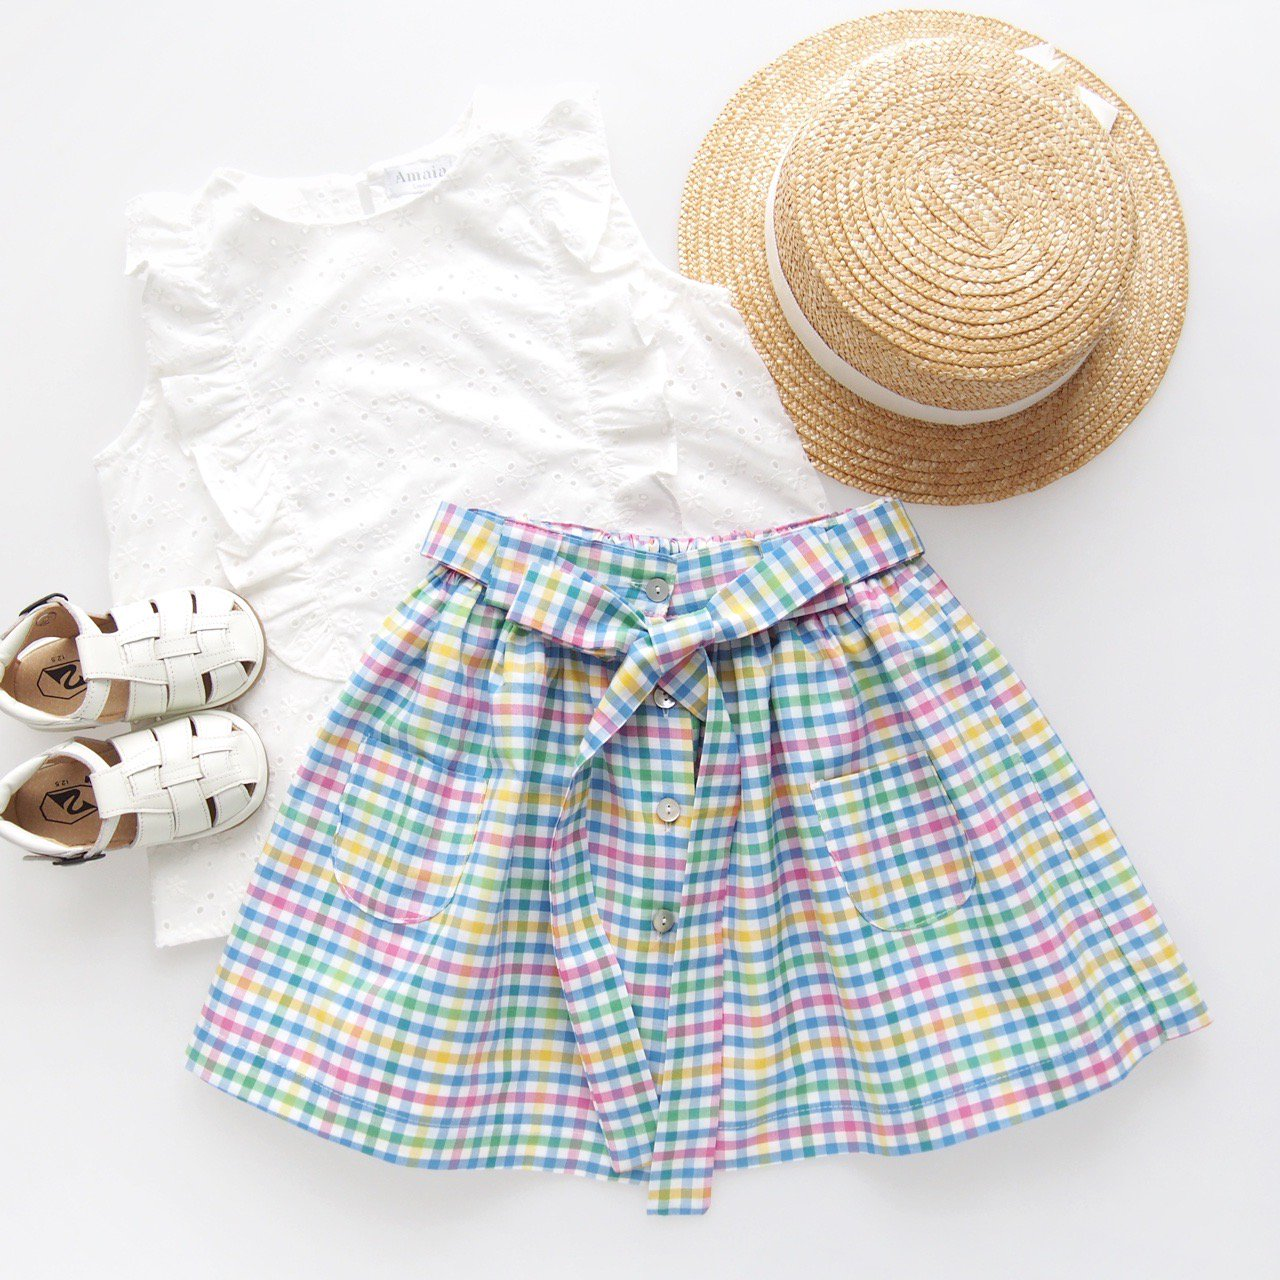 <img class='new_mark_img1' src='https://img.shop-pro.jp/img/new/icons14.gif' style='border:none;display:inline;margin:0px;padding:0px;width:auto;' />Pi & Pa - Multi gingham skirt